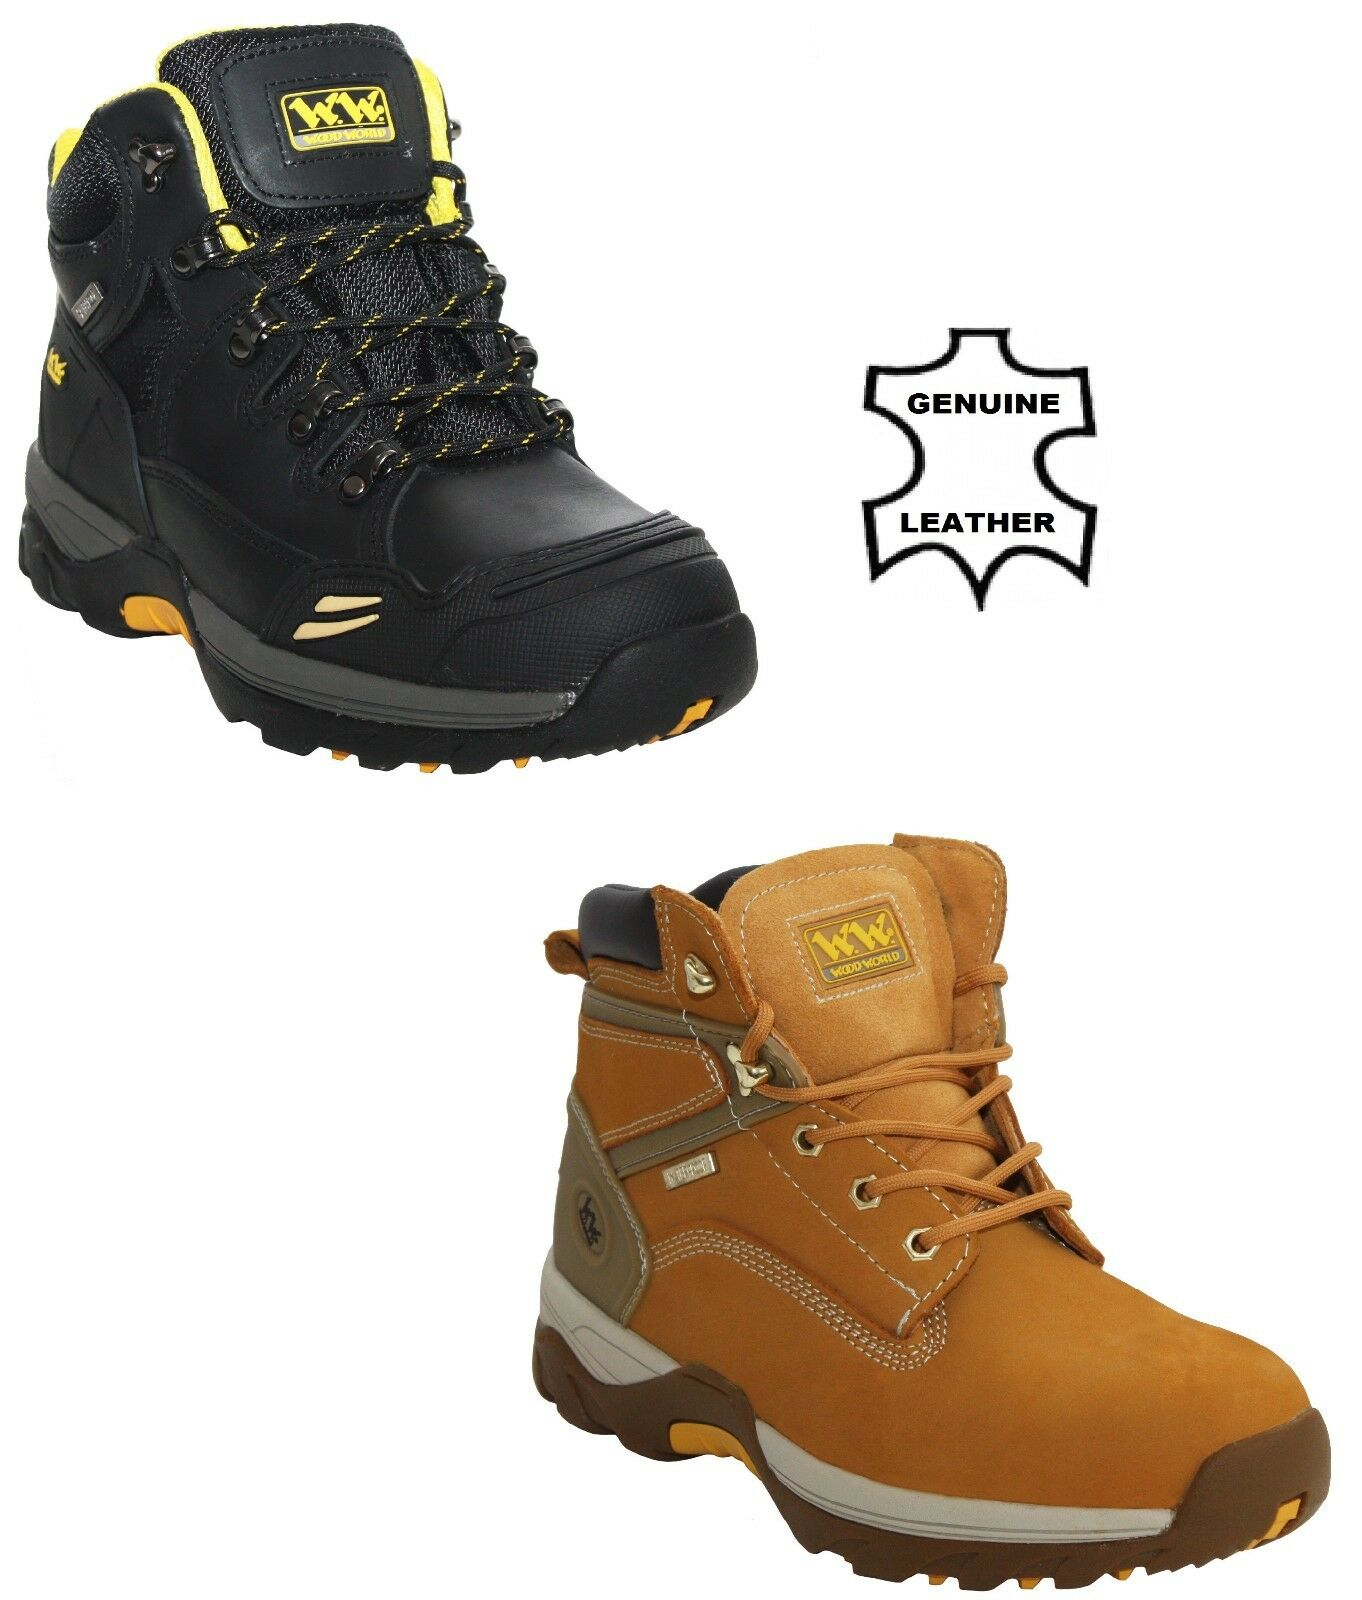 MENS WOOD WORLD SAFETY STEEL TOE WATERPROOF WORK BOOTS SIZE